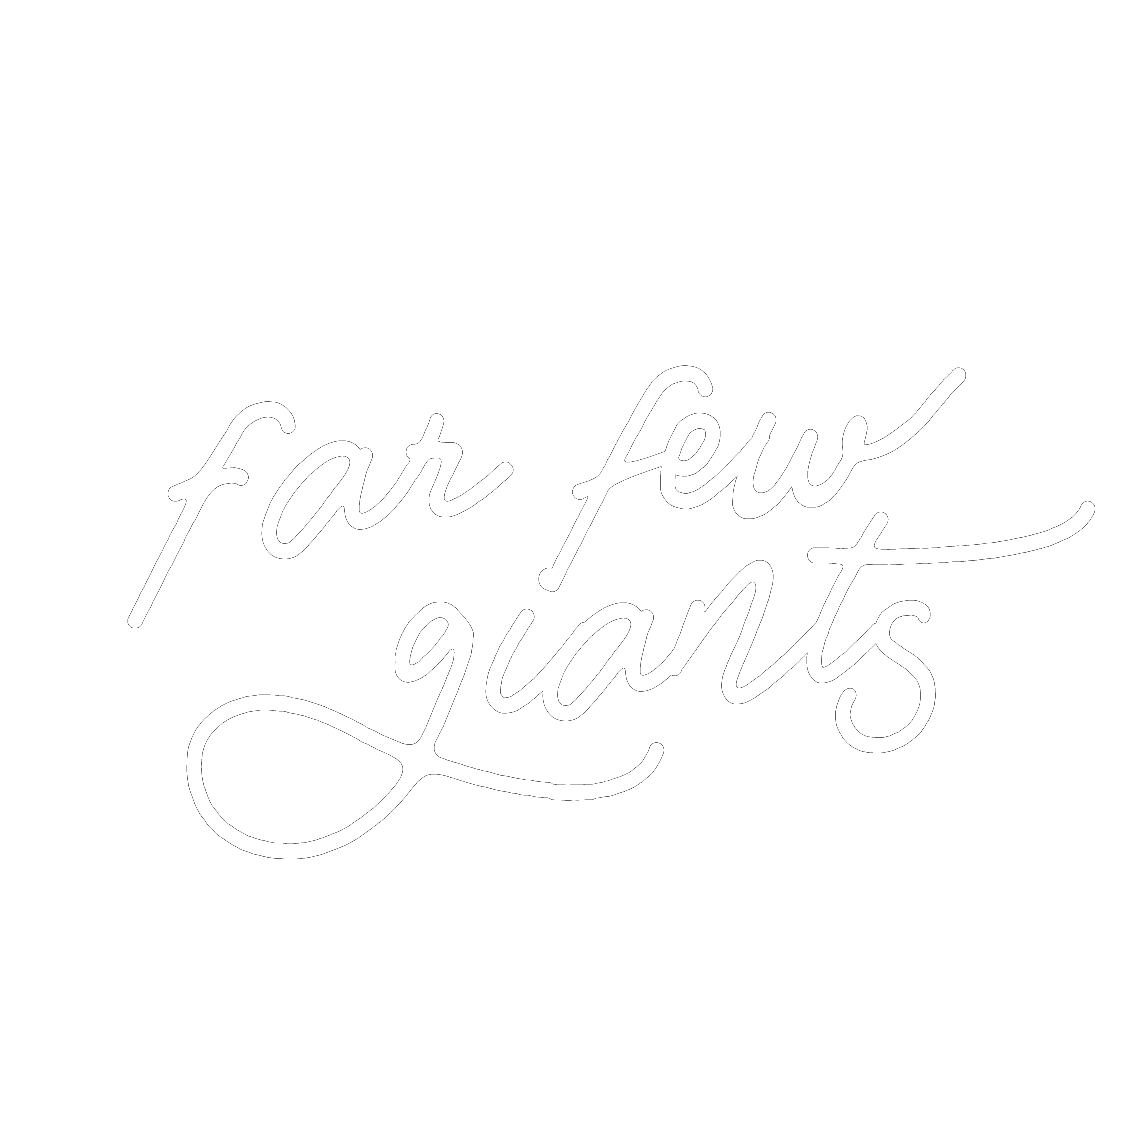 far few giants